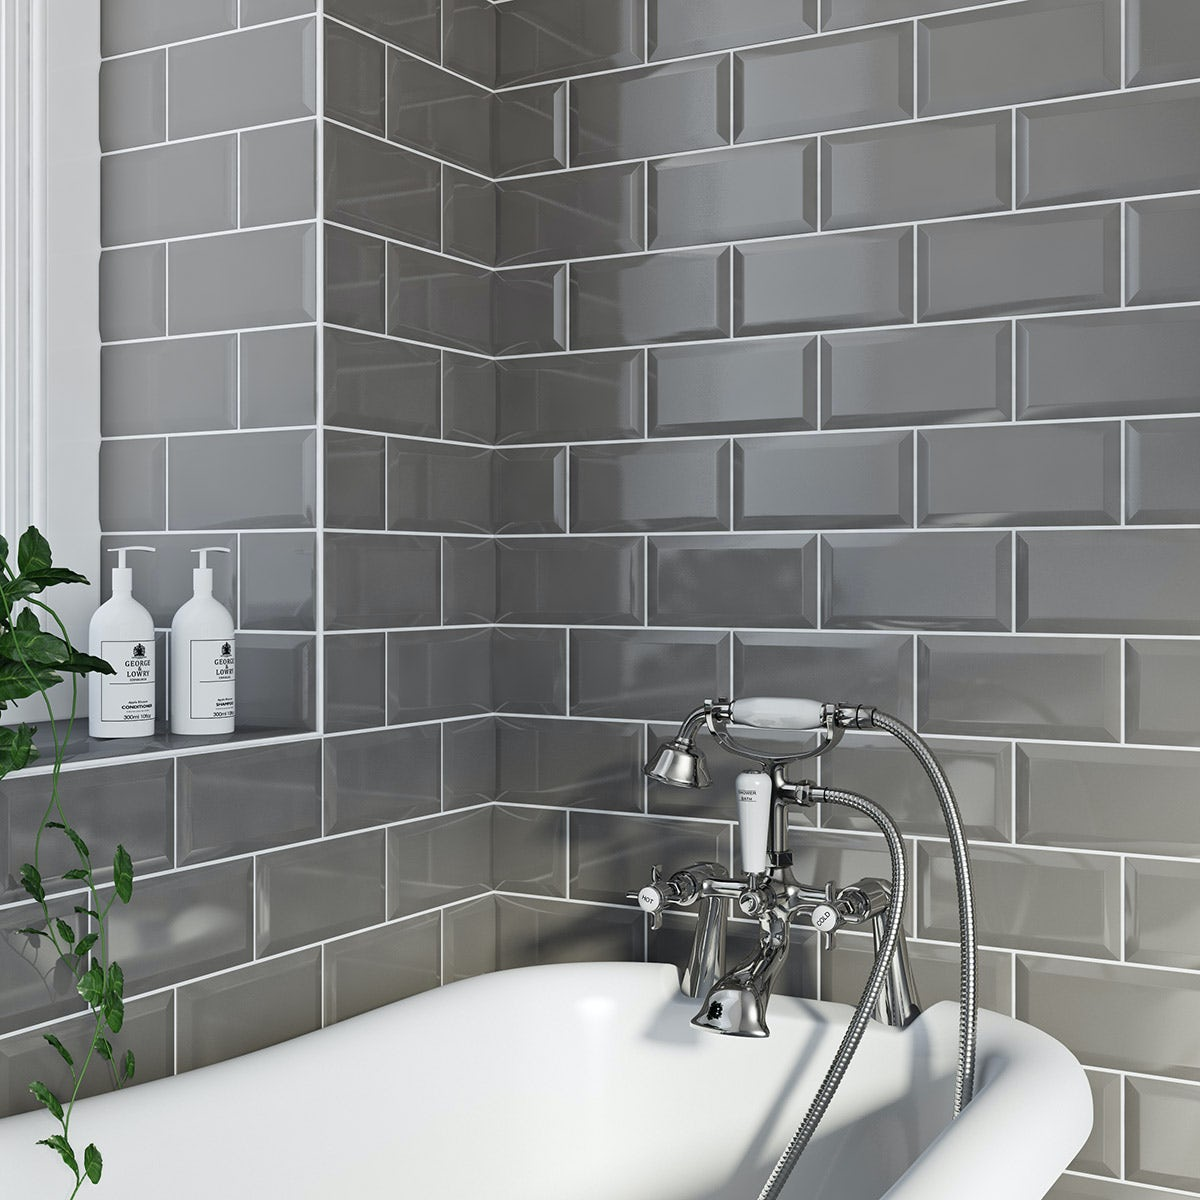 bathroom tile grey subway. Innovative Bathroom Tiles Grey Subway Brick White Tile